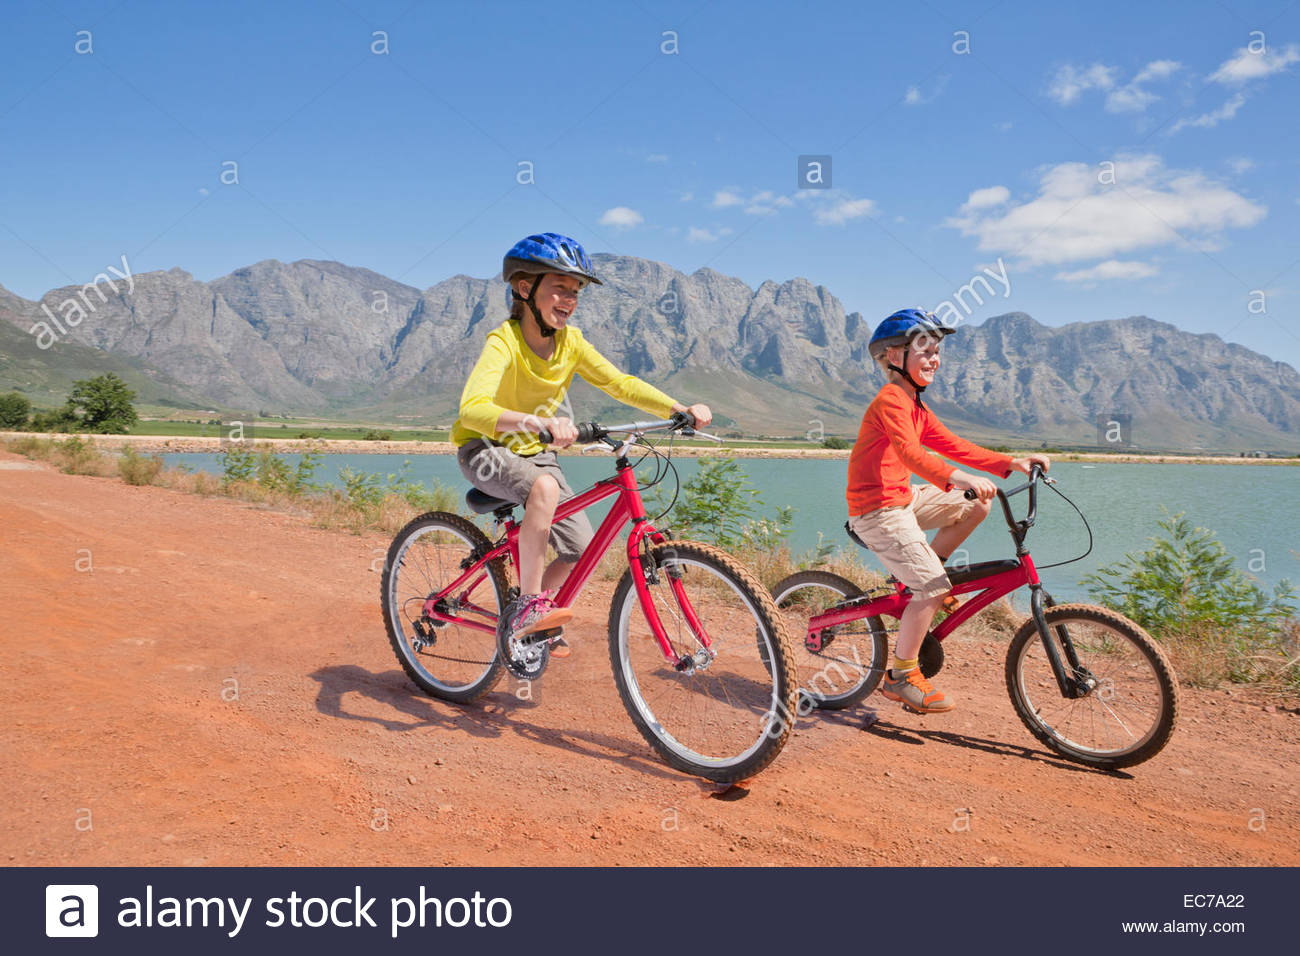 Children riding bicycles on track by lake - Stock Image